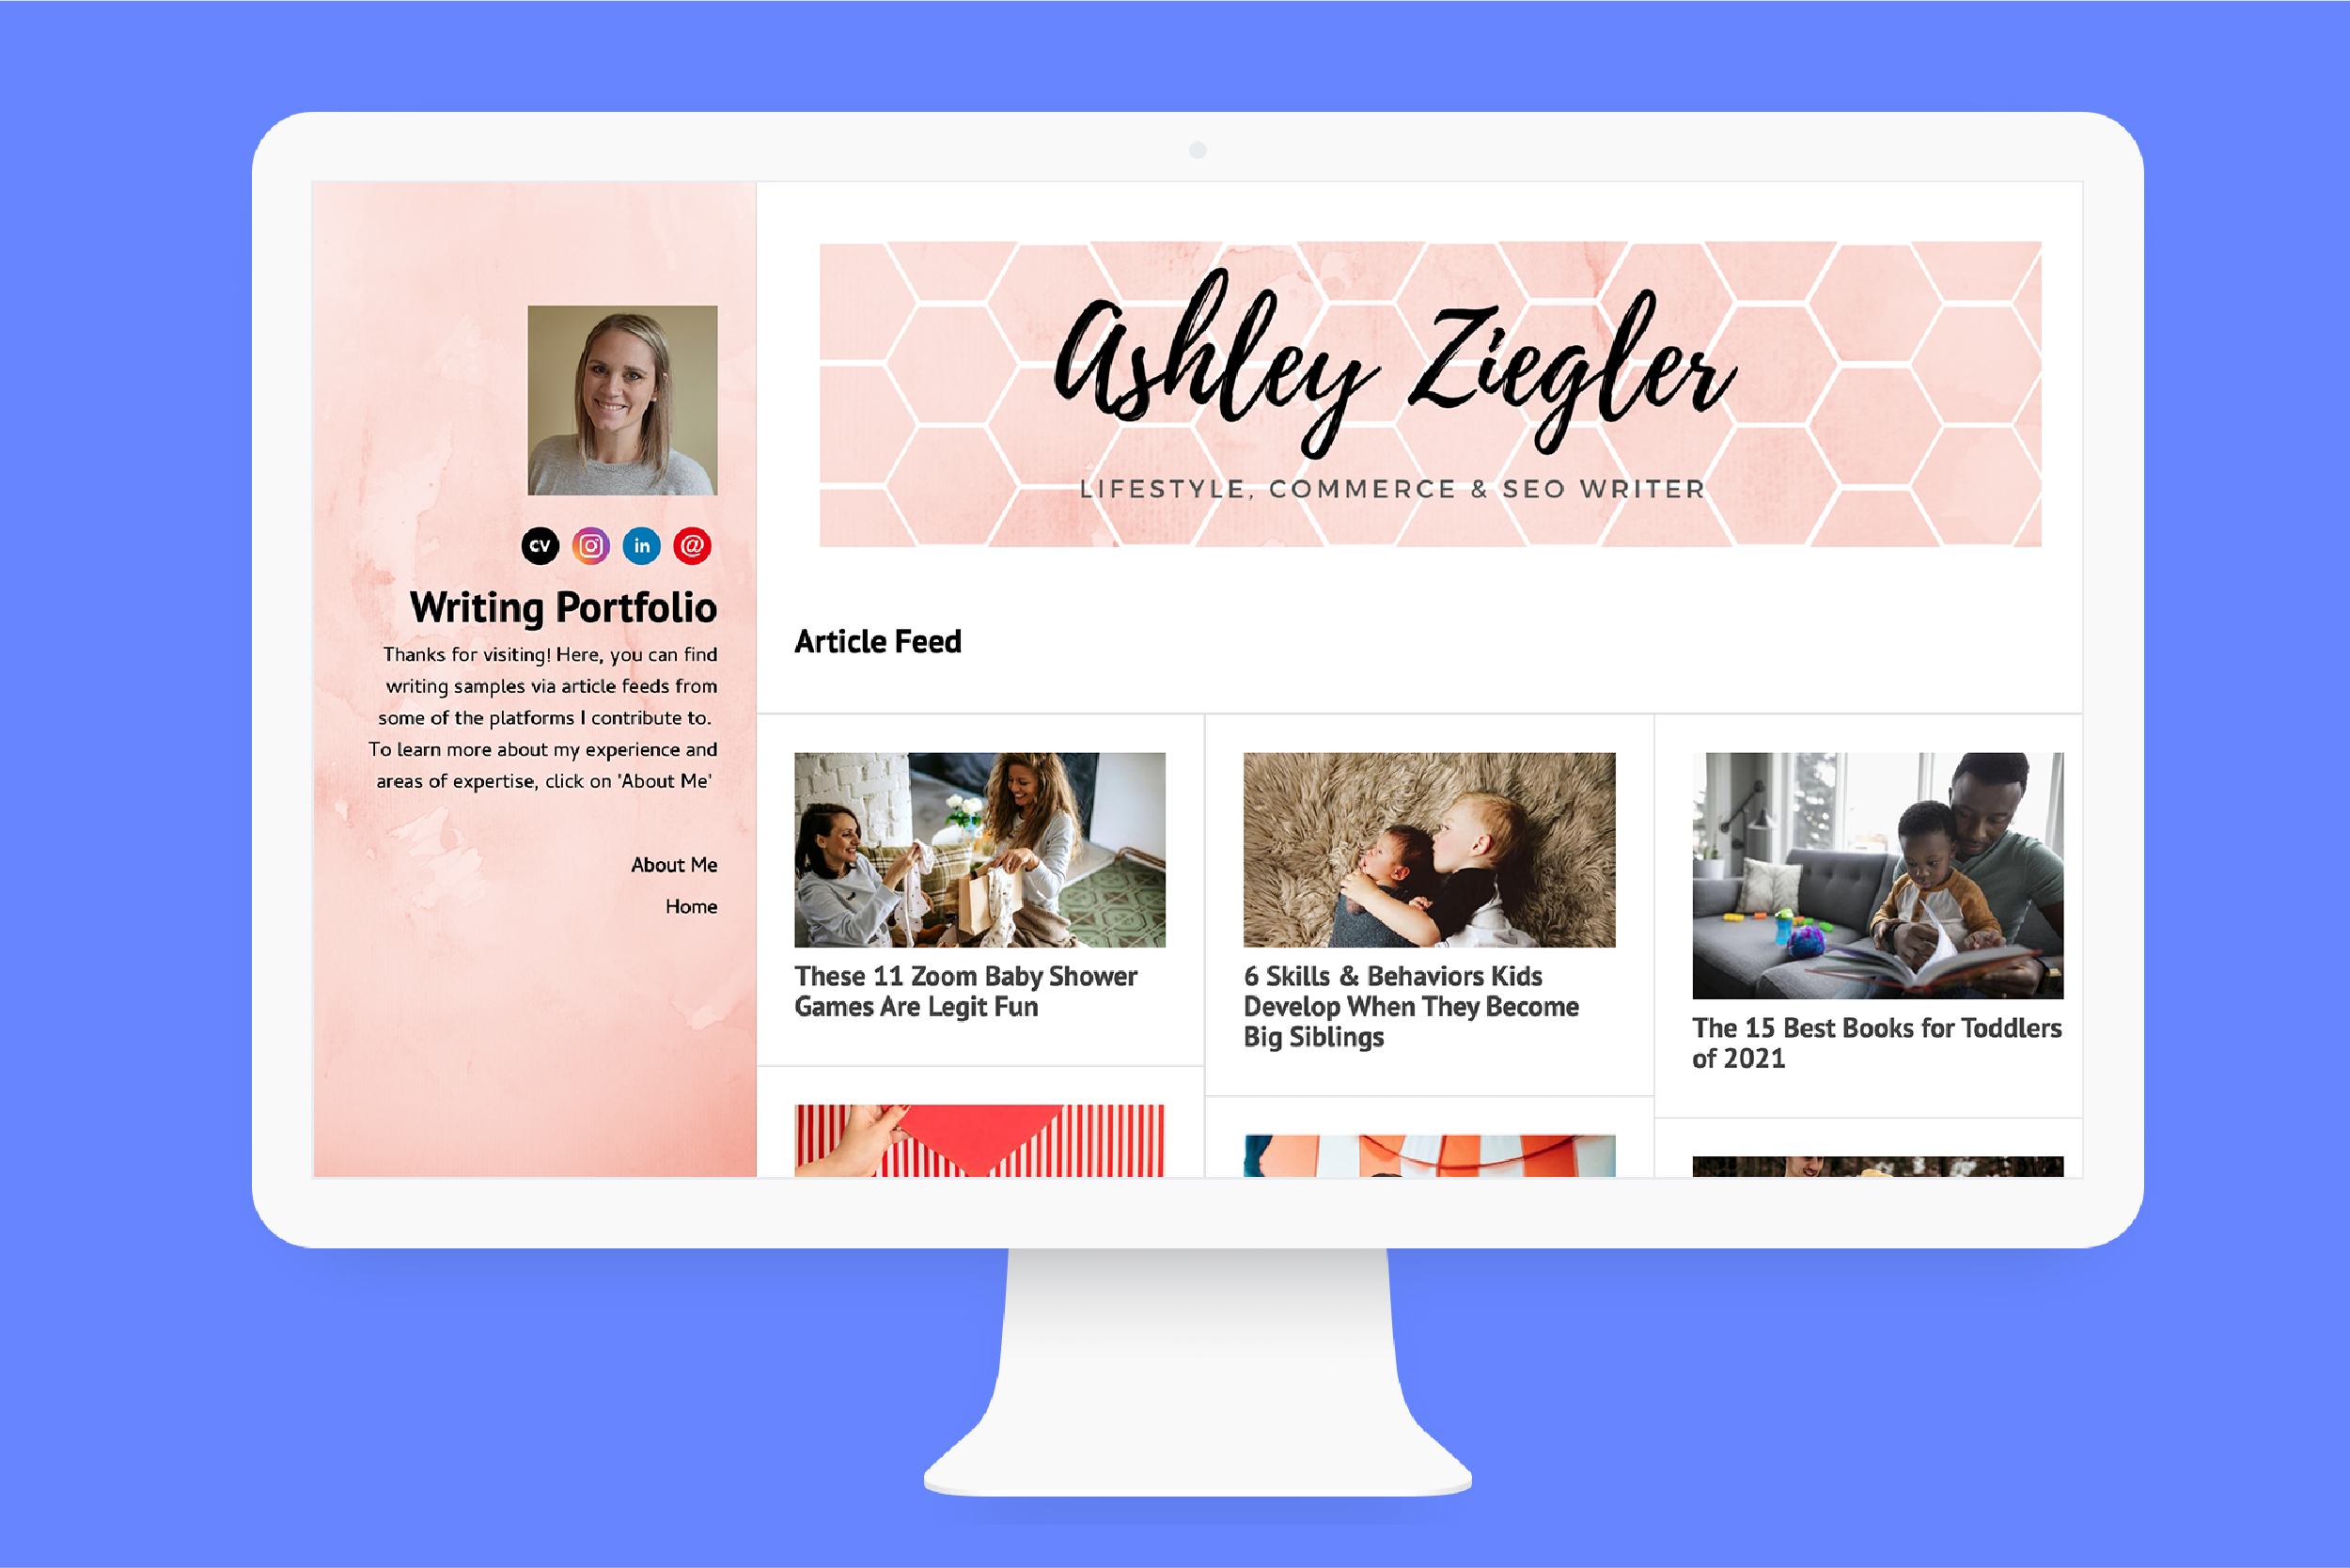 Ashley's website home page